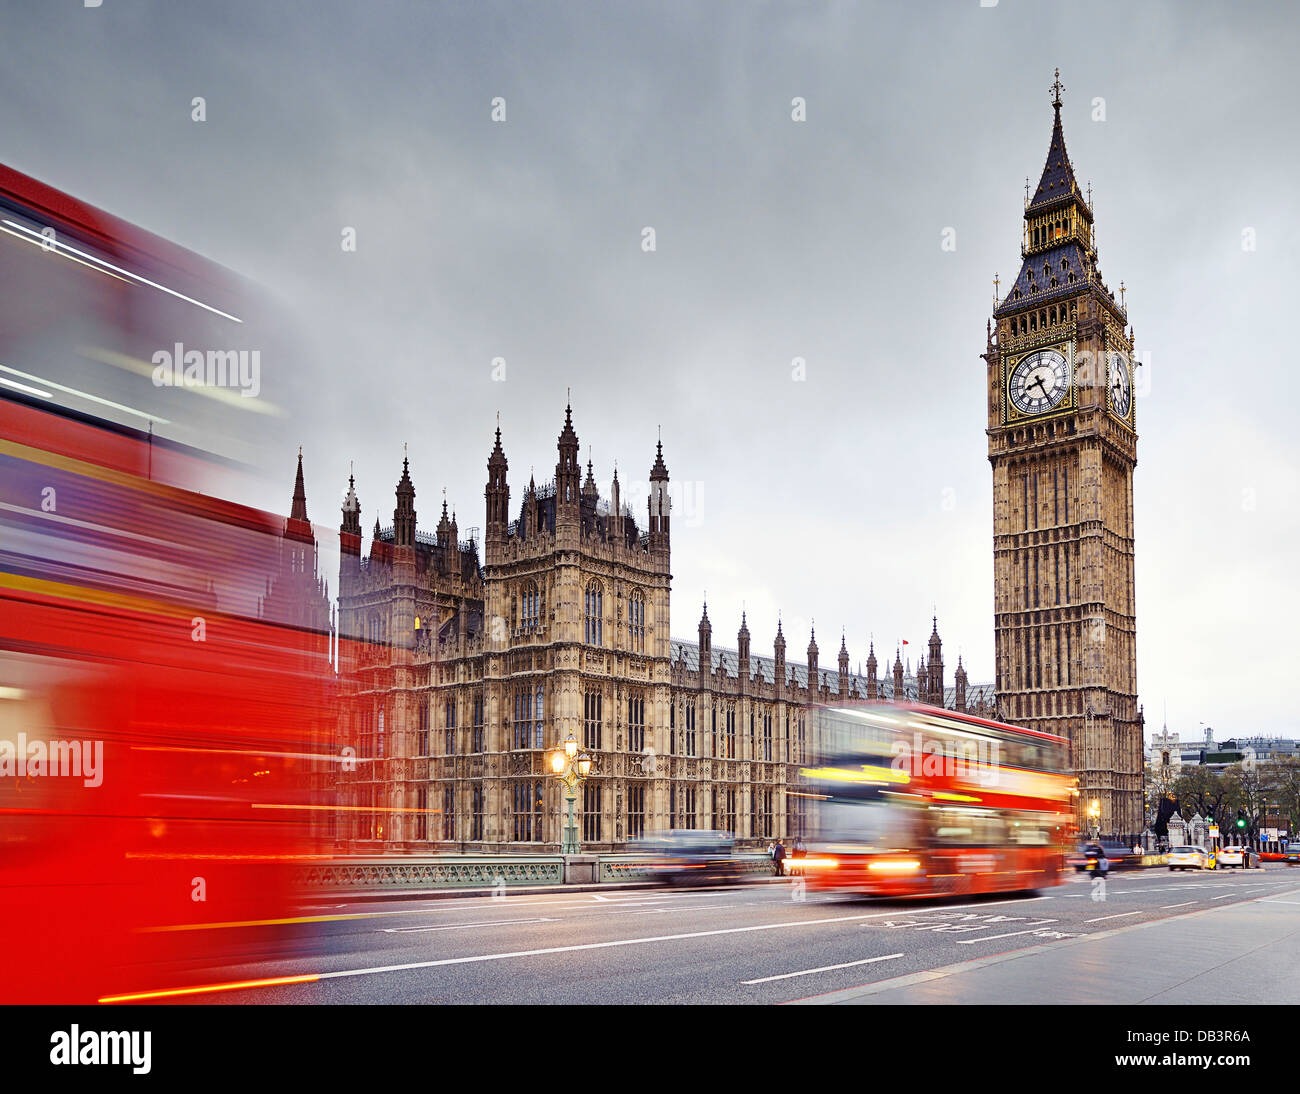 London, Big Ben and the Houses of Parliament from Westminster Bridge. England, United Kingdom. - Stock Image